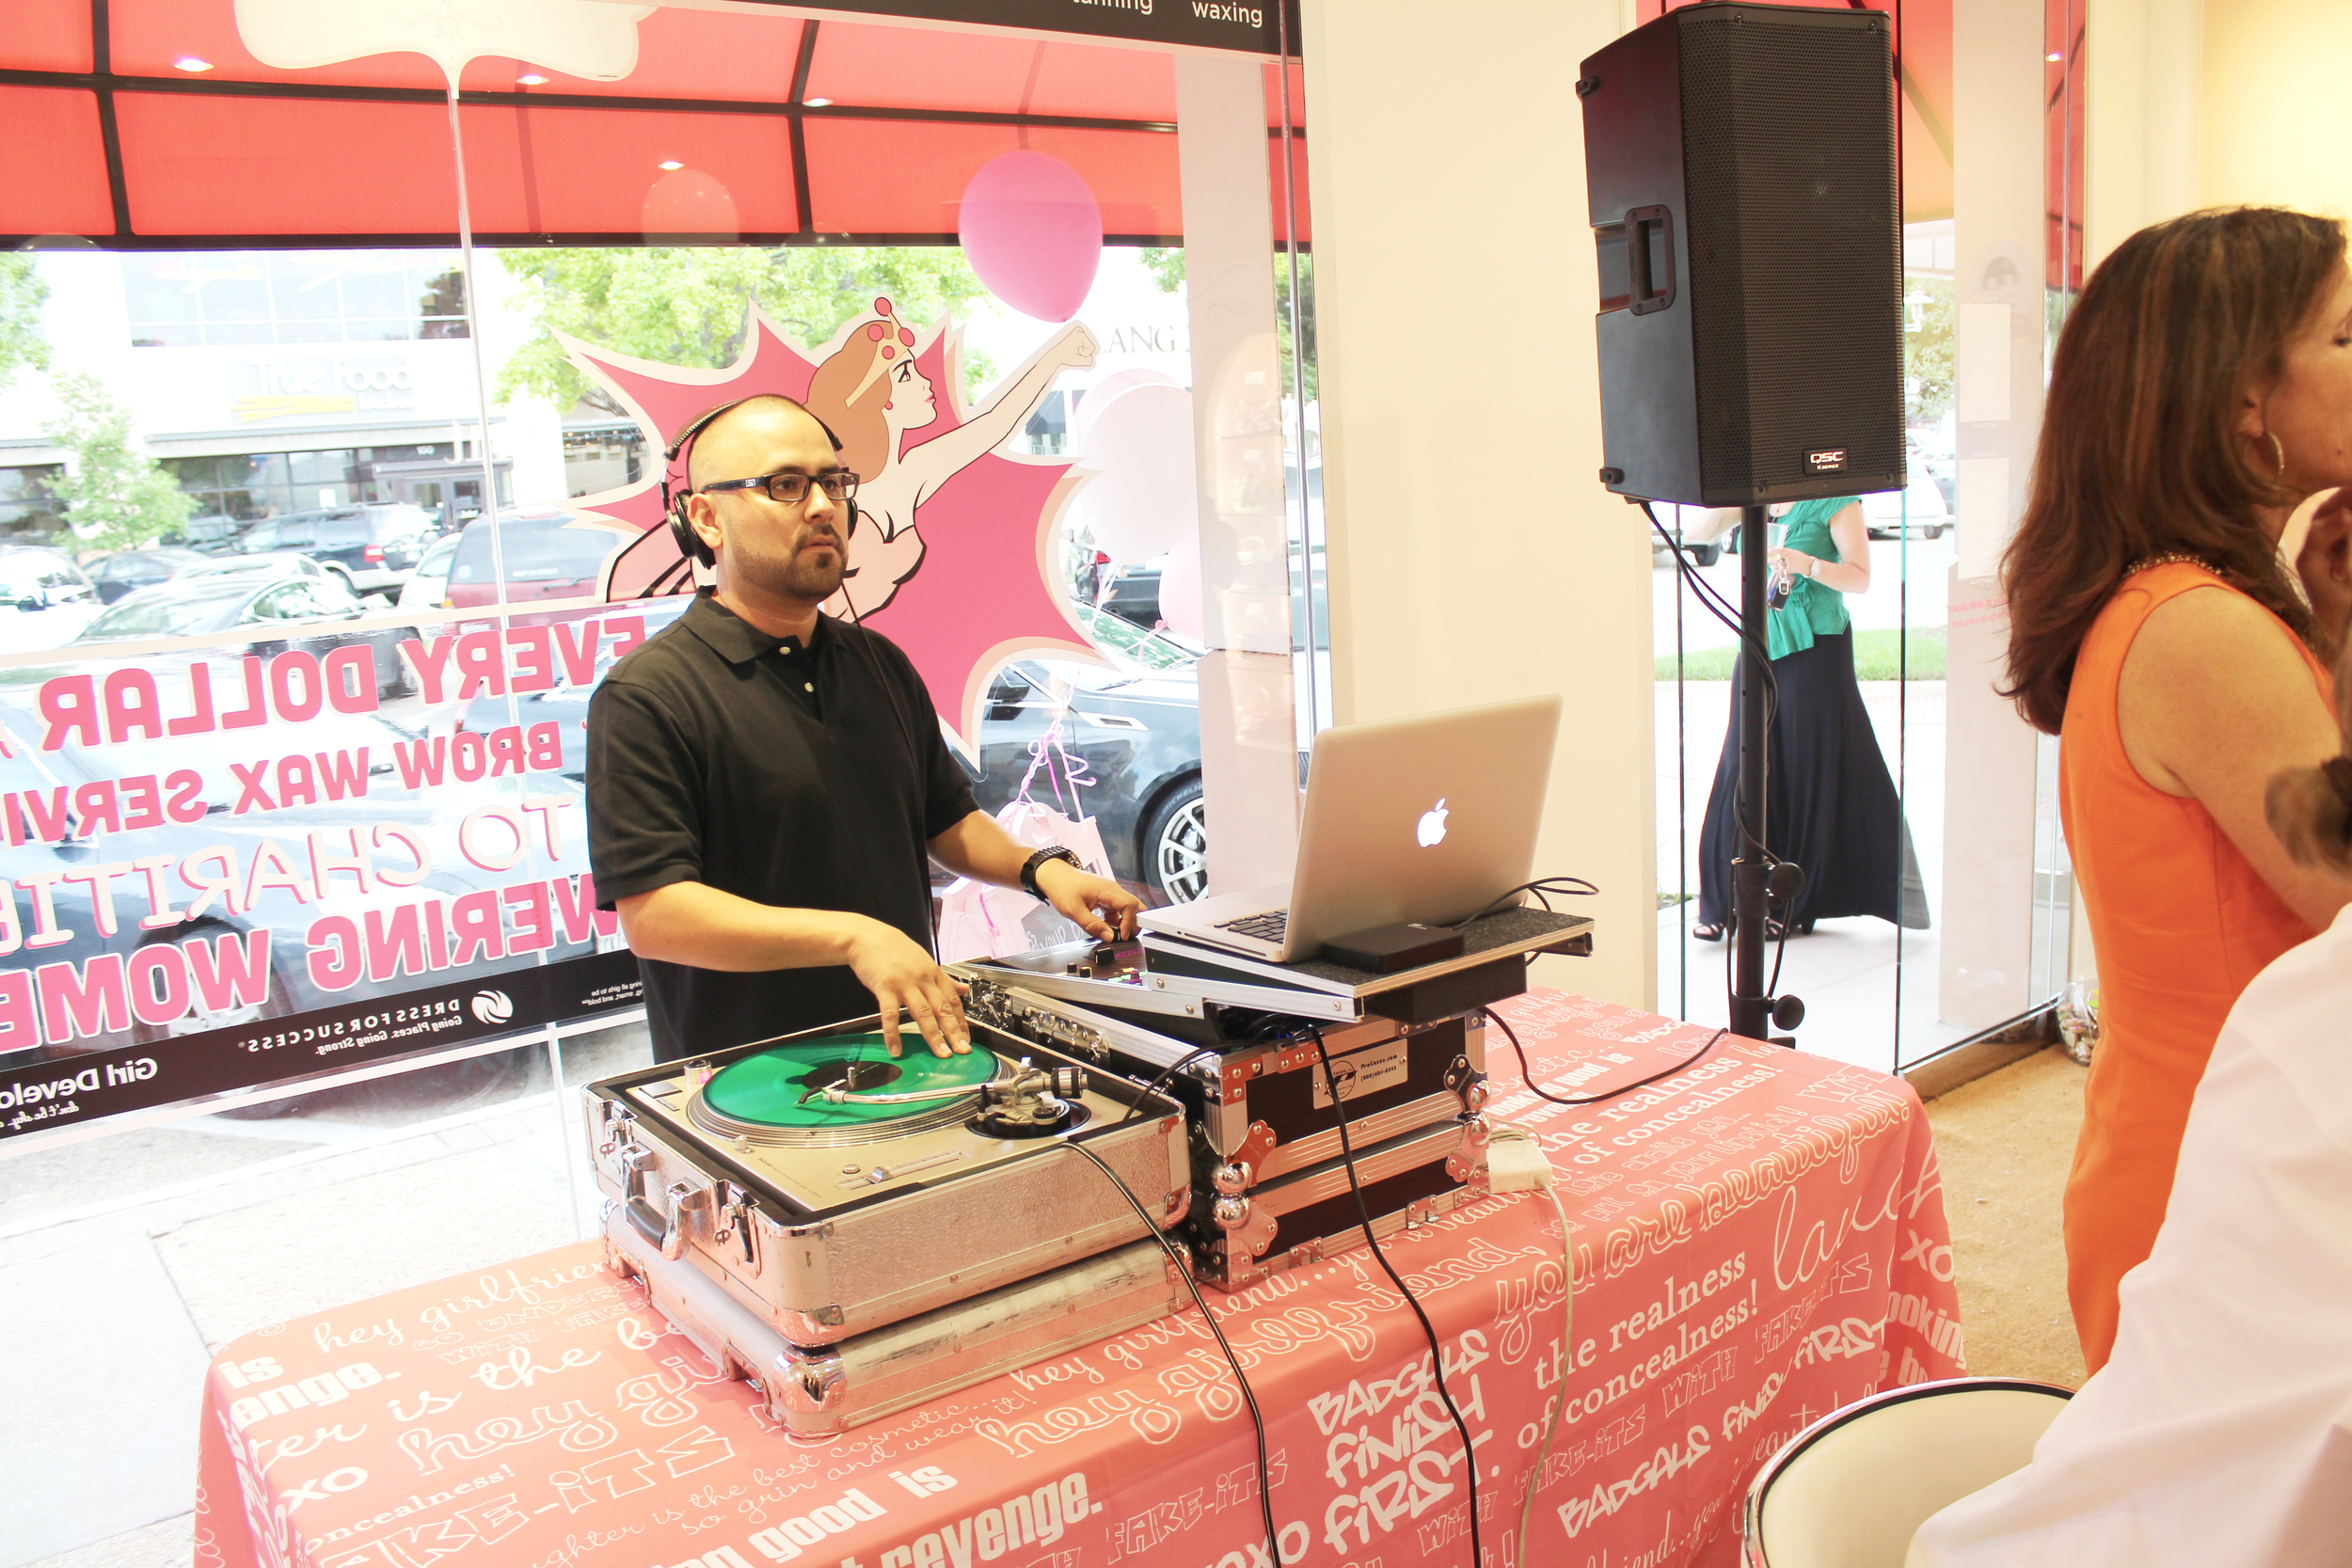 DJ spinning the latest hits